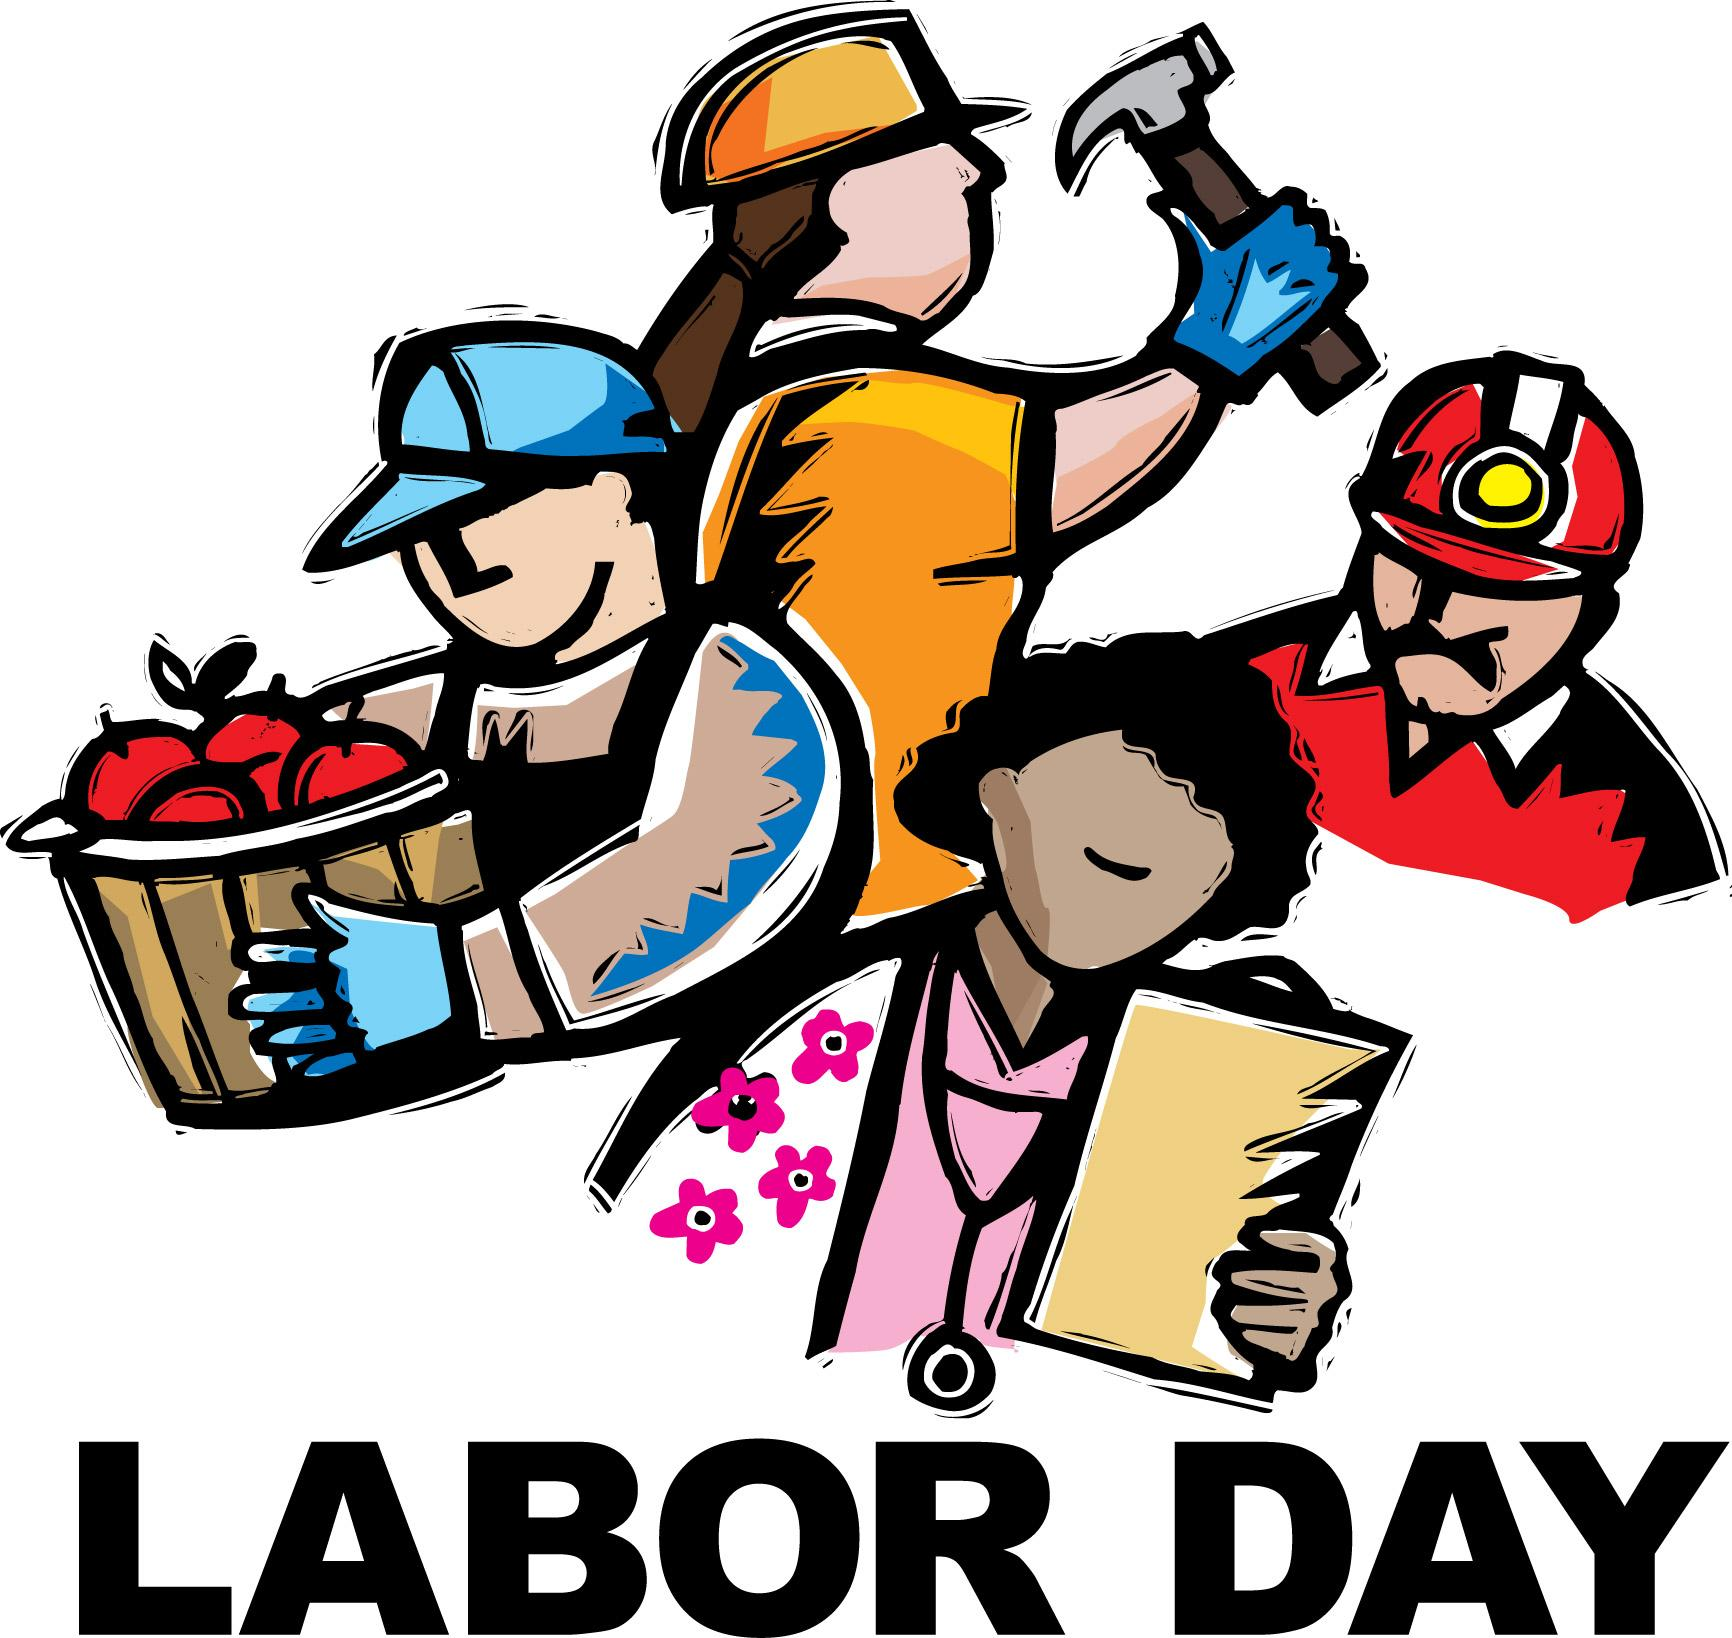 Labor Day Clipart Free Clipart Images Cl-Labor day clipart free clipart images clipartwiz-8